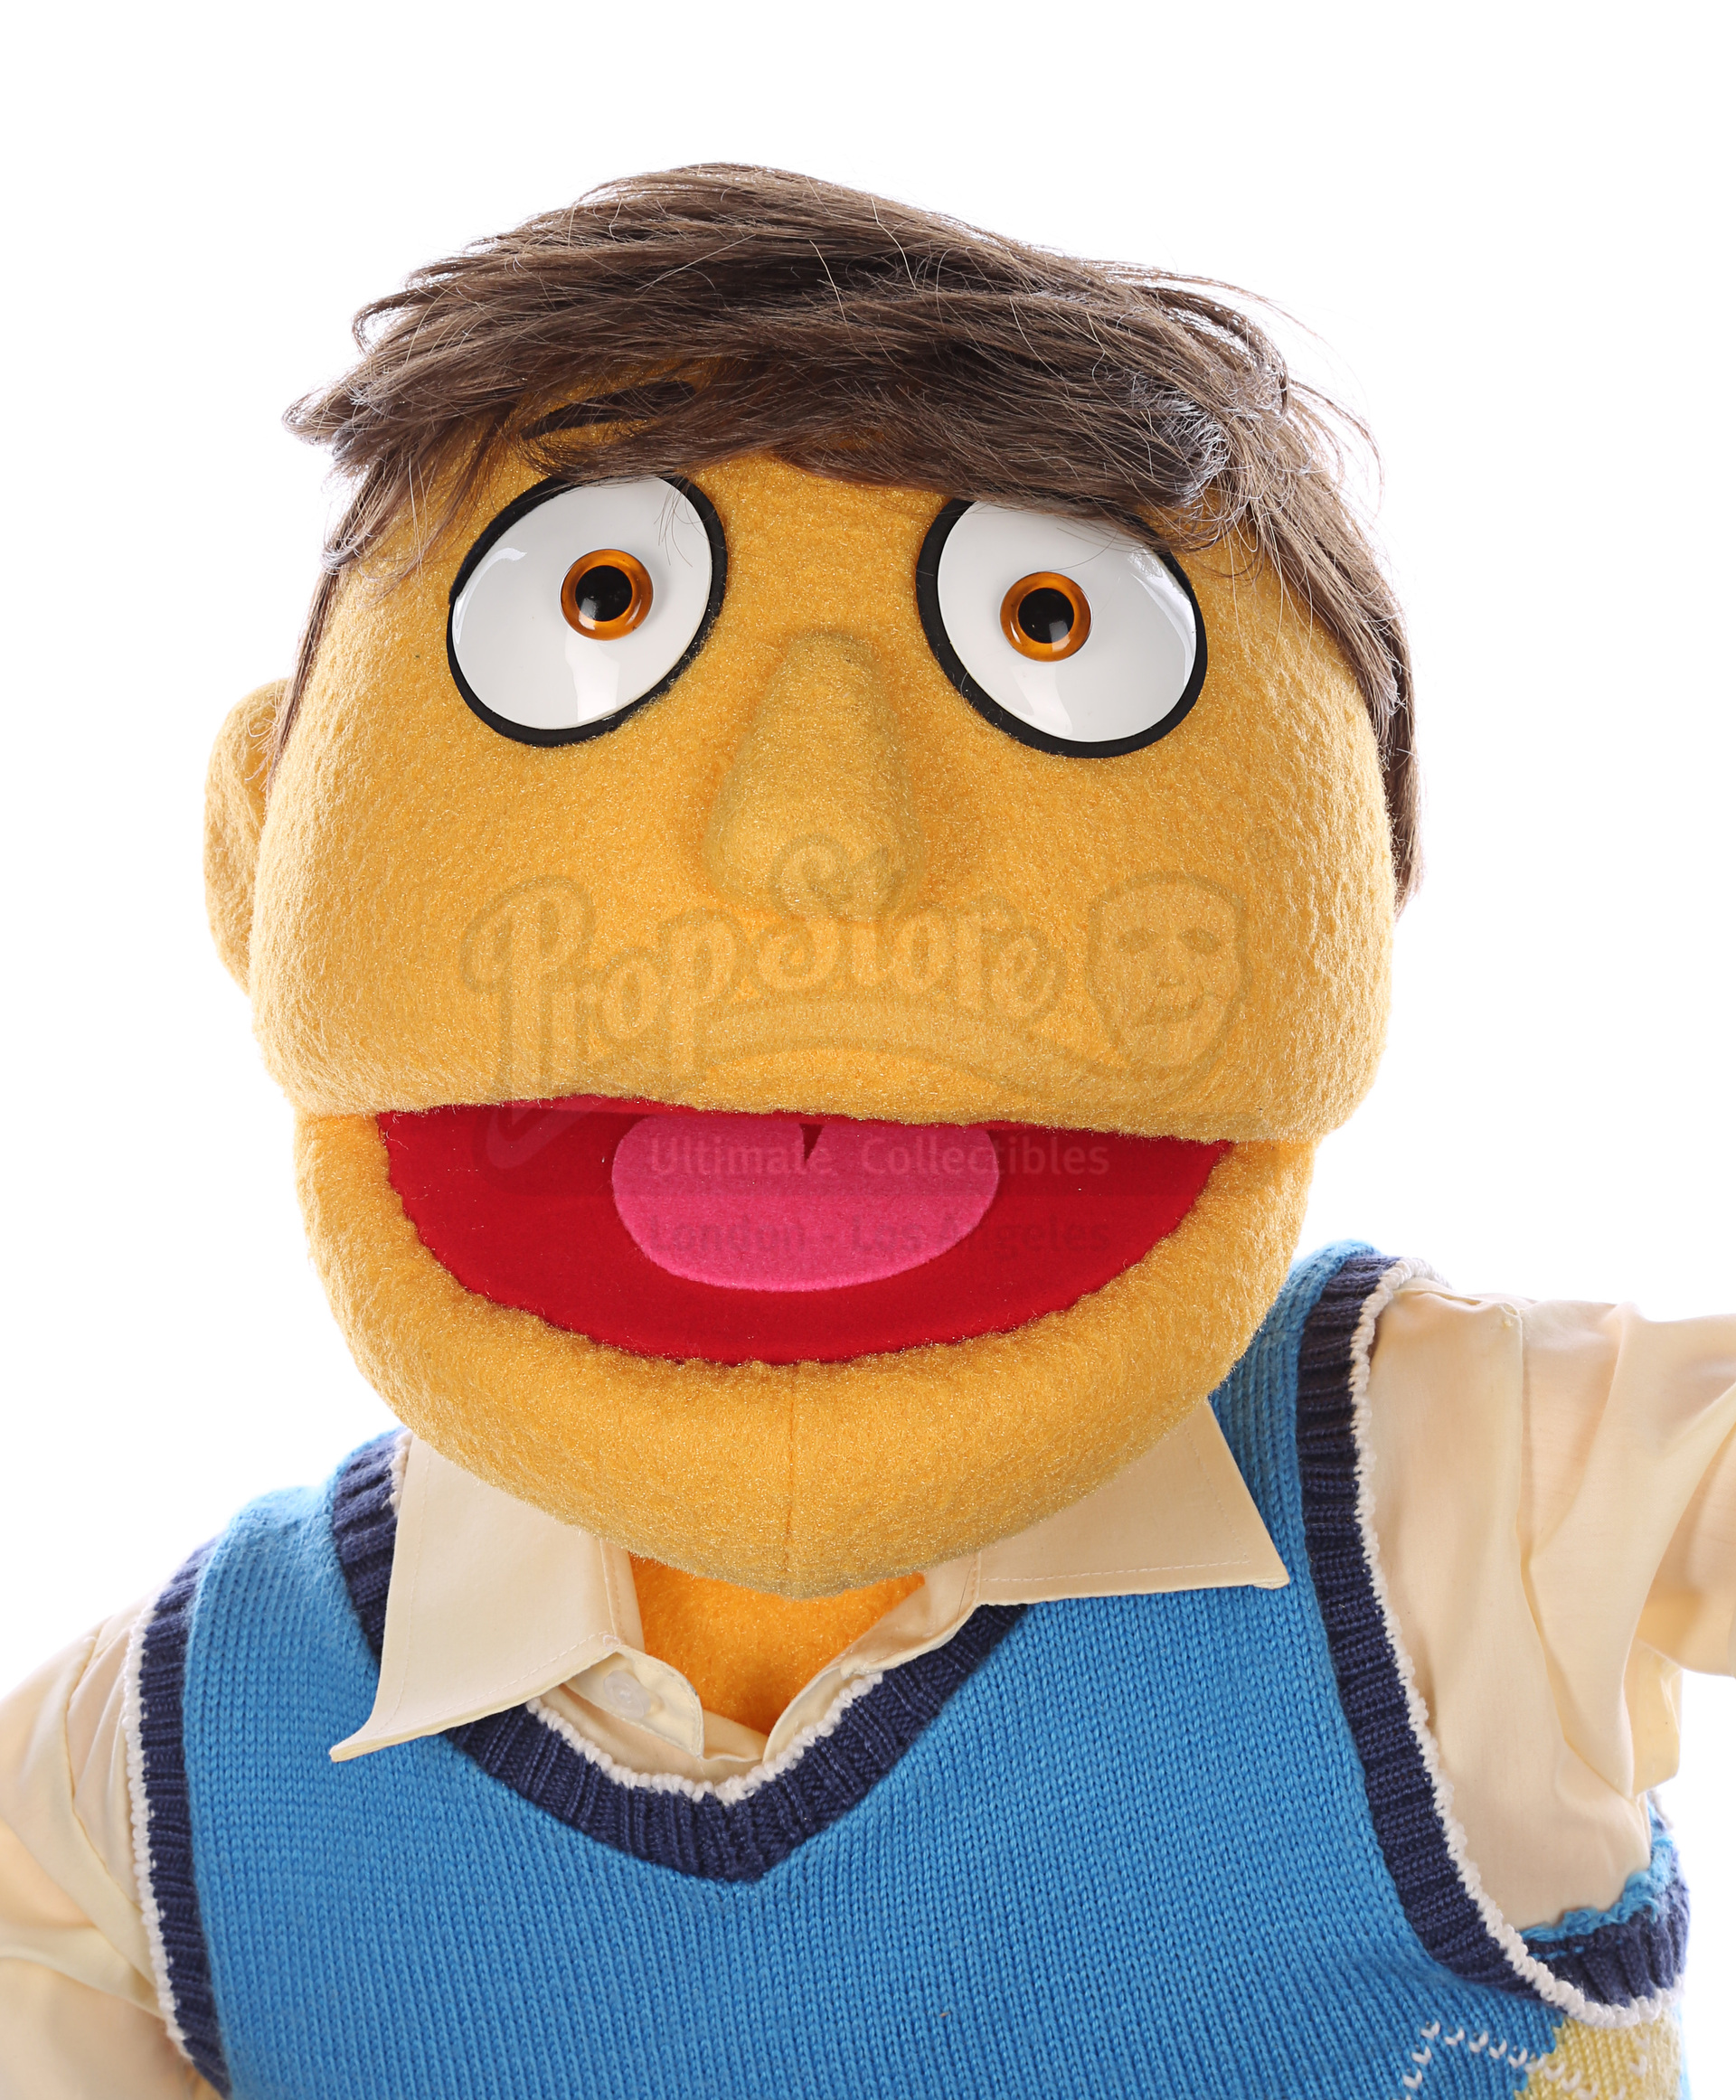 AVENUE Q (STAGE SHOW) - Cameo Puppet Collection: Mrs T, Ricky and Newcomer - Image 7 of 13